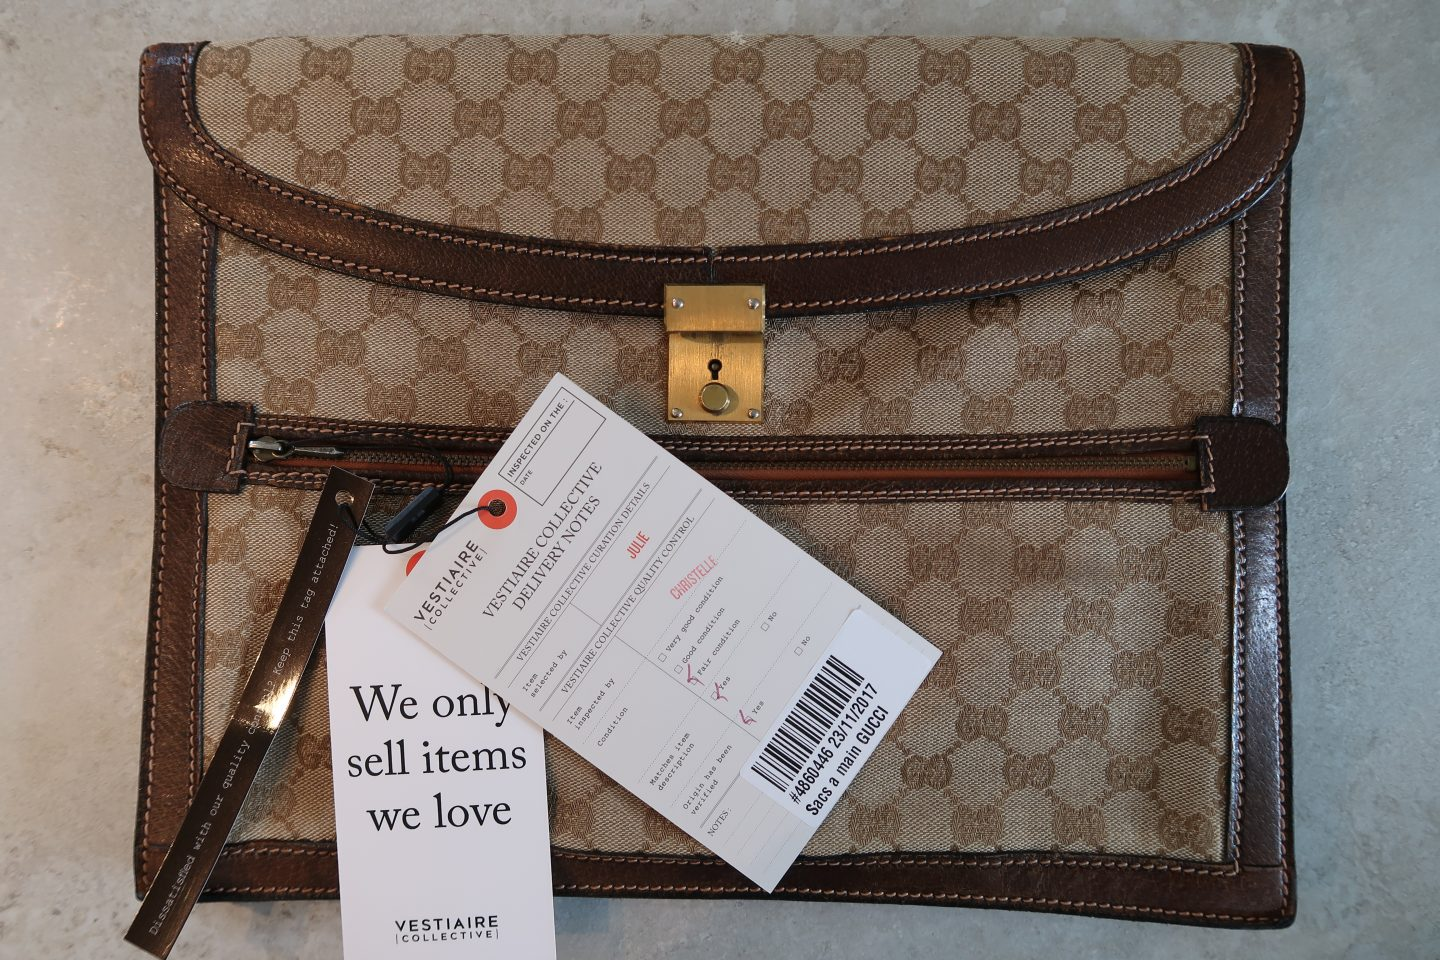 Gucci bag purchased from Vestiaire